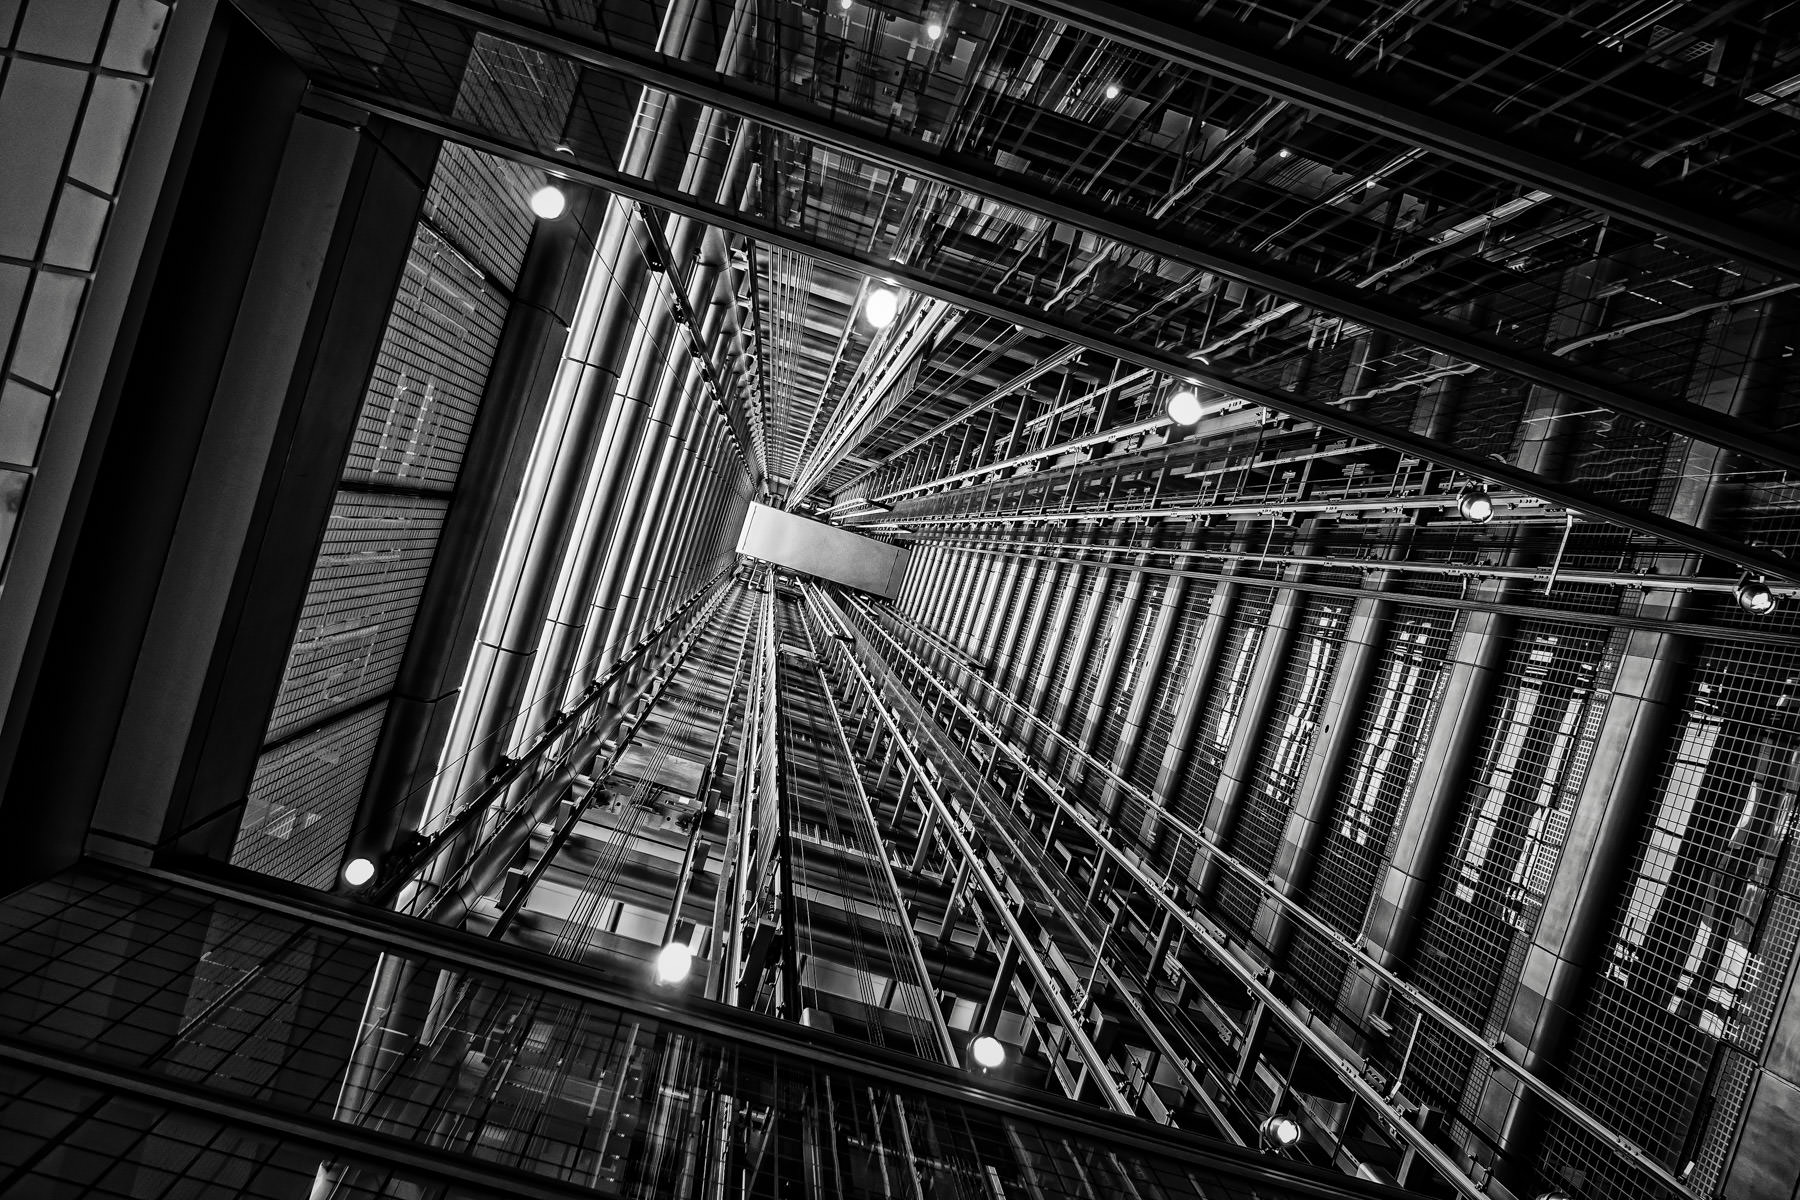 The open space between two elevator shafts at Chicago's 300 East Randolph (Blue Cross Blue Shield Tower) resembles a futuristic tunnel.